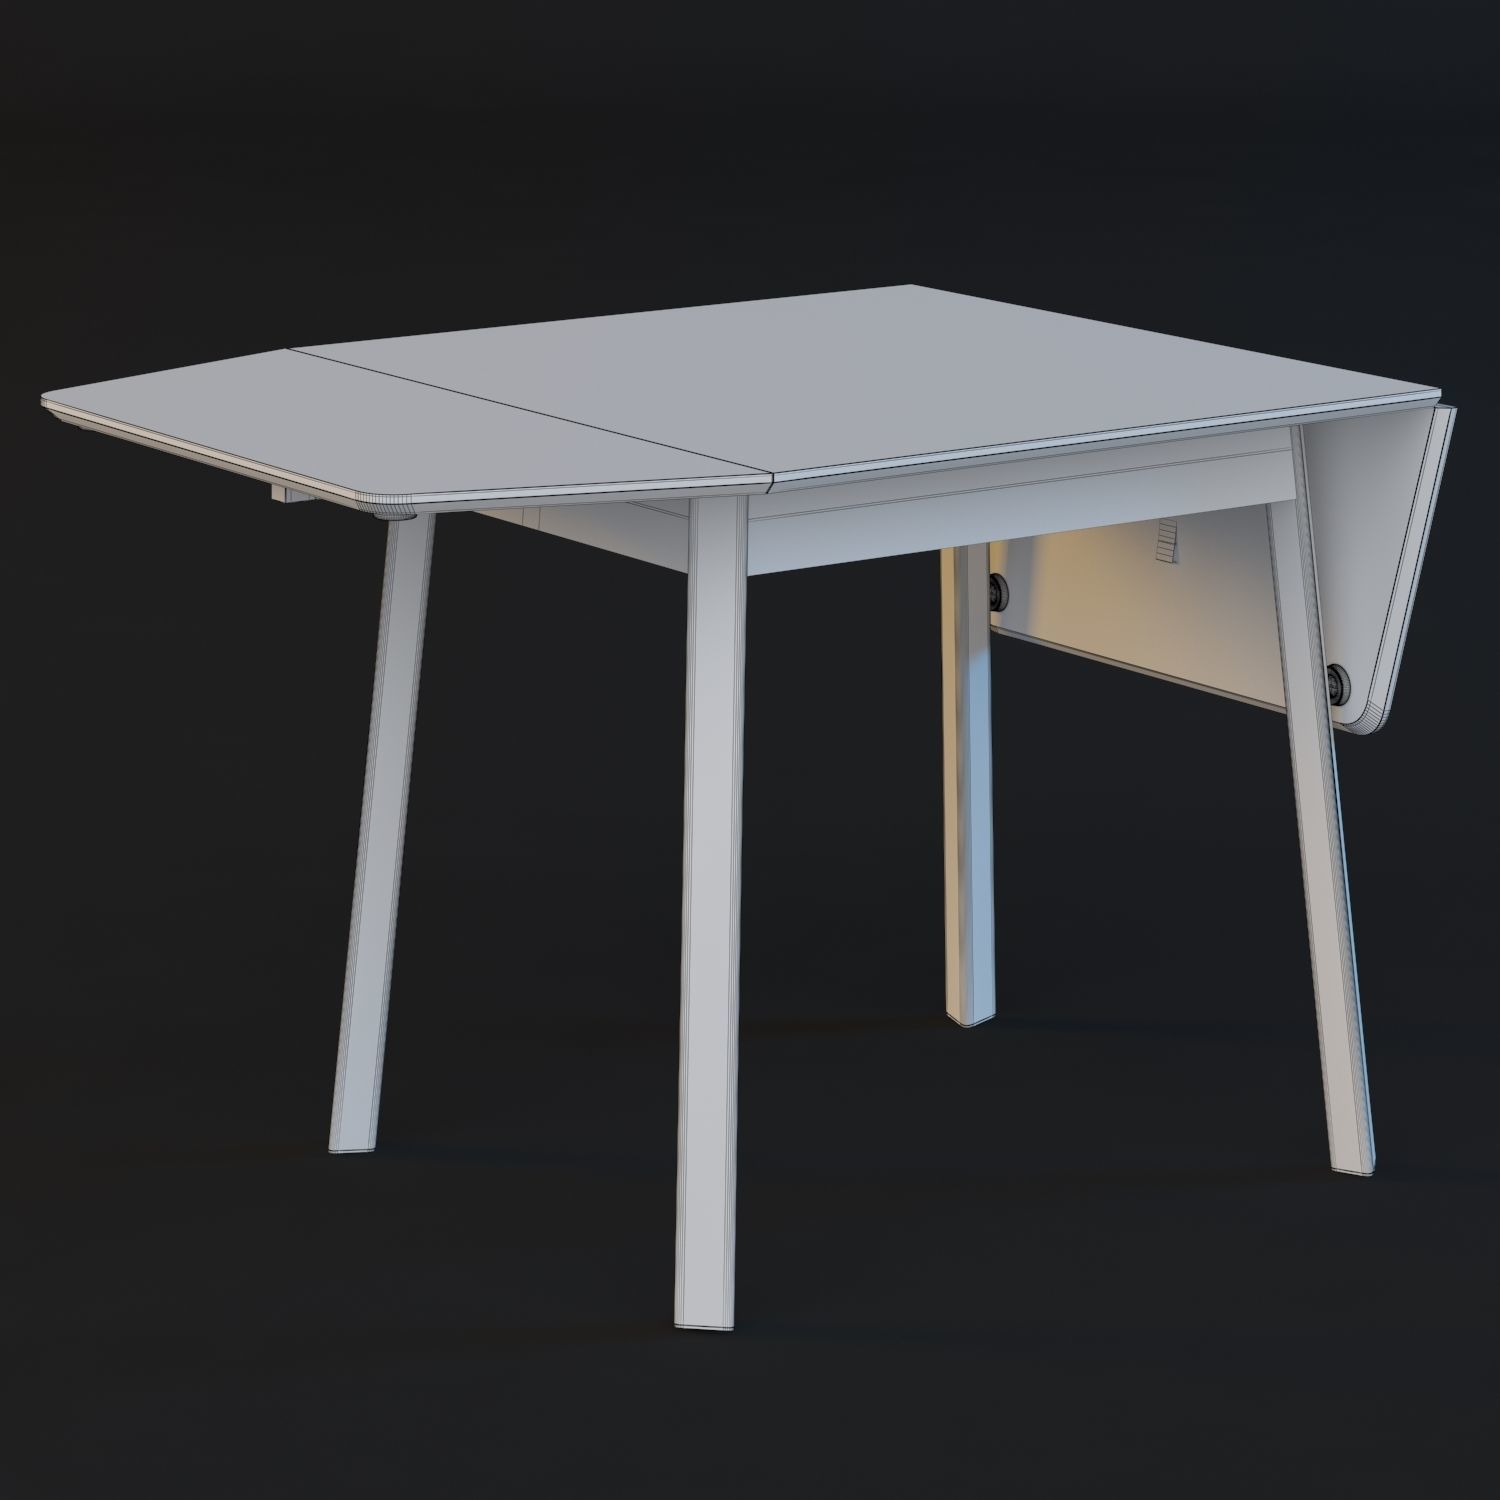 Ikea Table Ikea Ps 2012 Table 3d Model